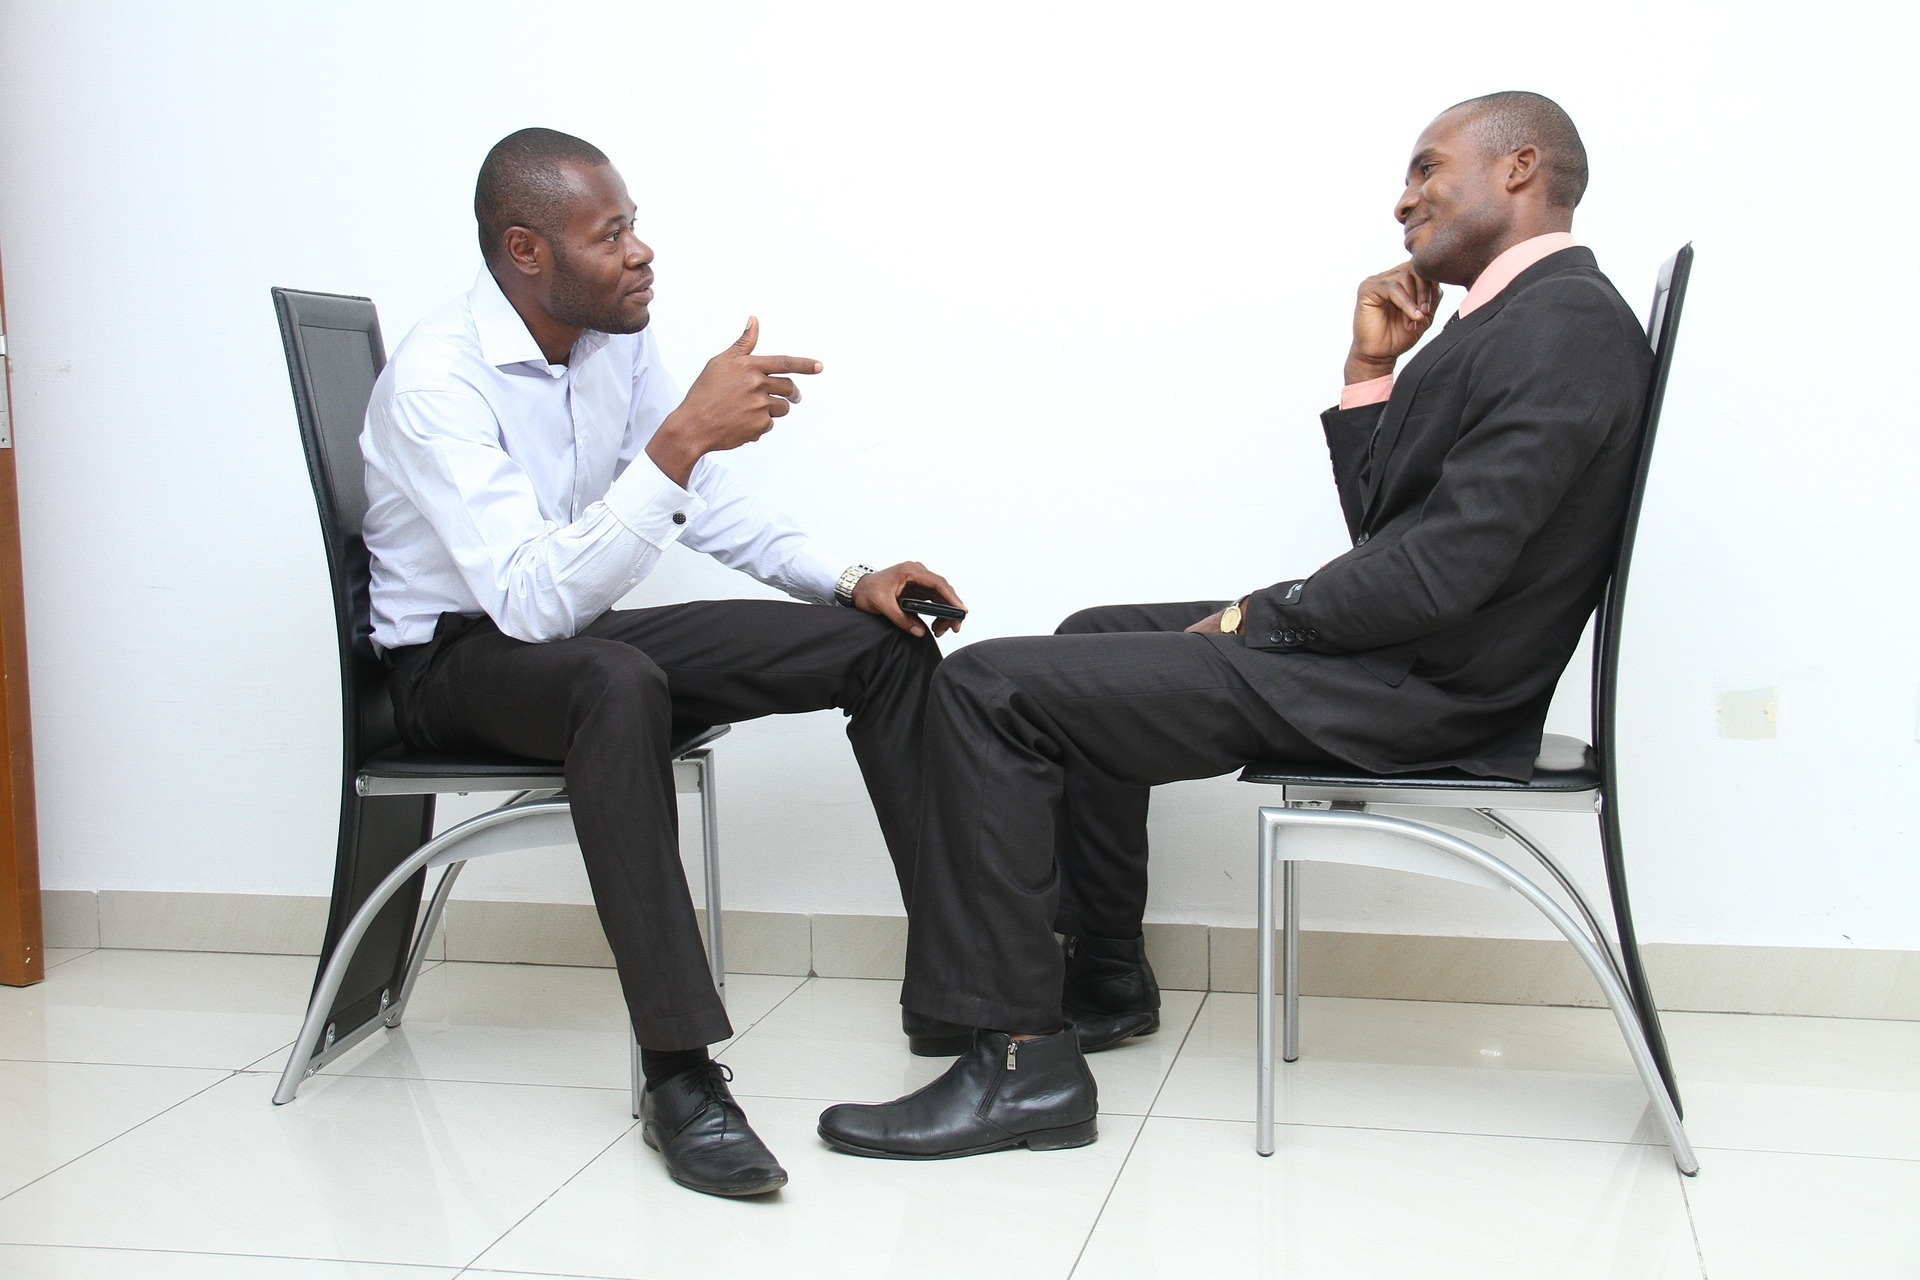 Body language demonstrates how comfortable a person is in a professional setting, as well as how interested the person is in what you are saying and asking.